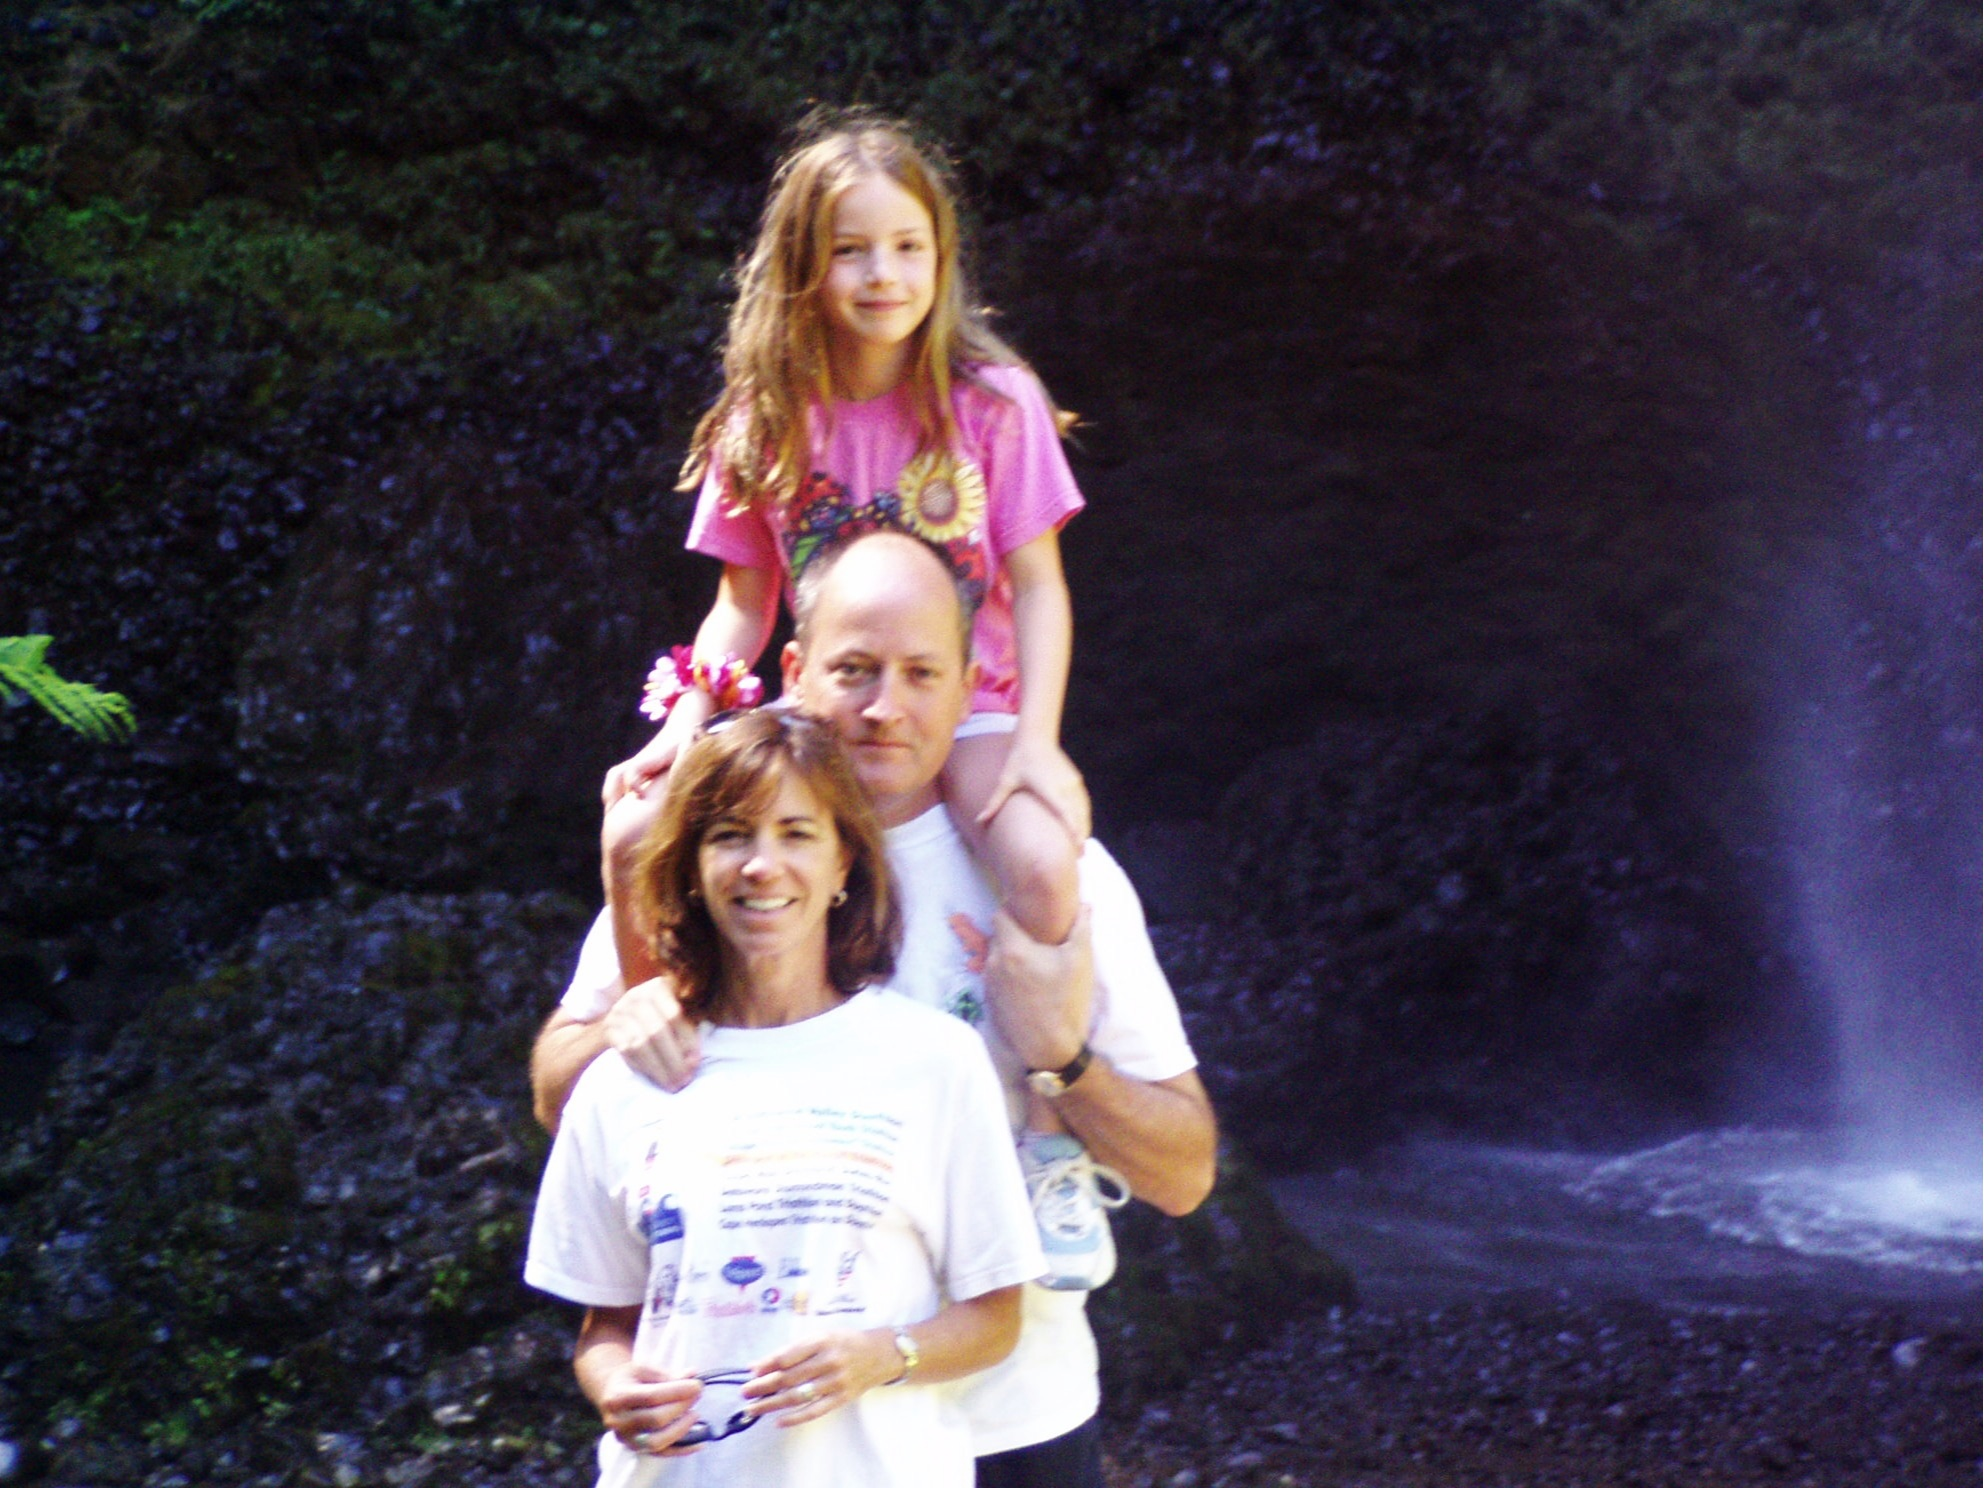 Taken at the famous Multnomah Falls on the Columbia River Gorge. Notice the rat's nest for hair, I refused to brush it.